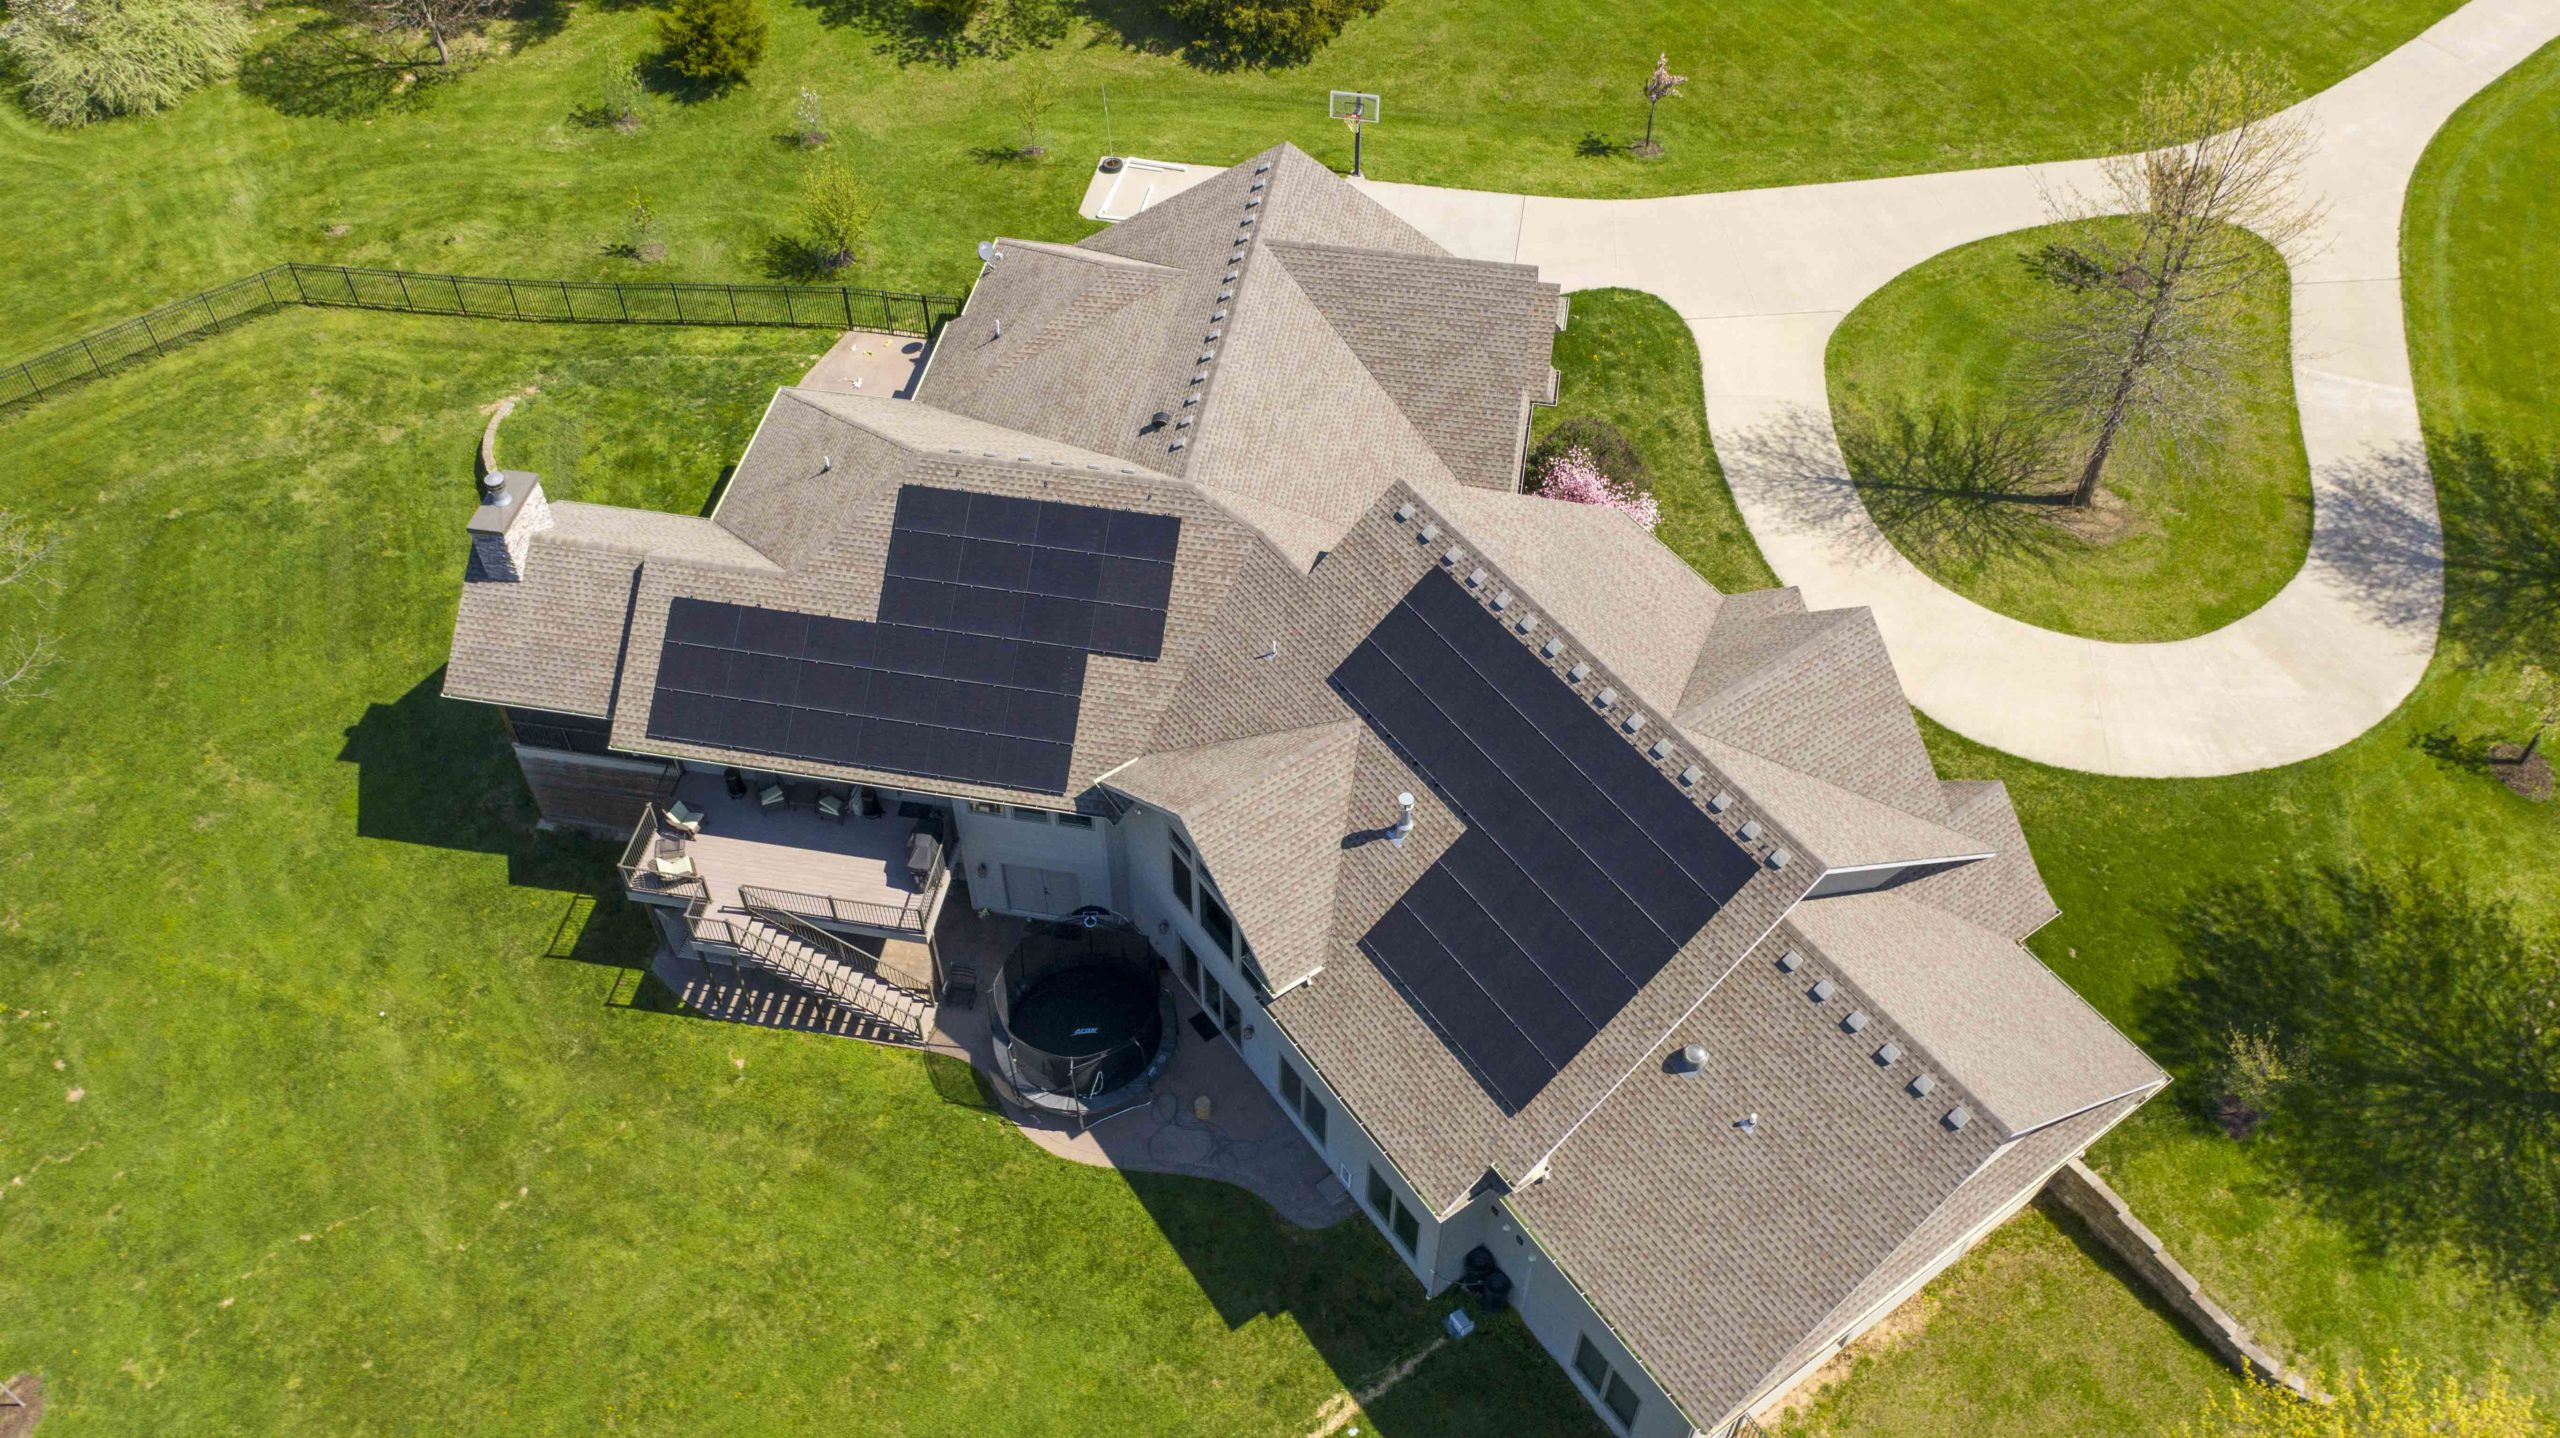 Black solar panels are neatly arranged on this Boone County home. Solar system installation was completed by Dogwood Solar.